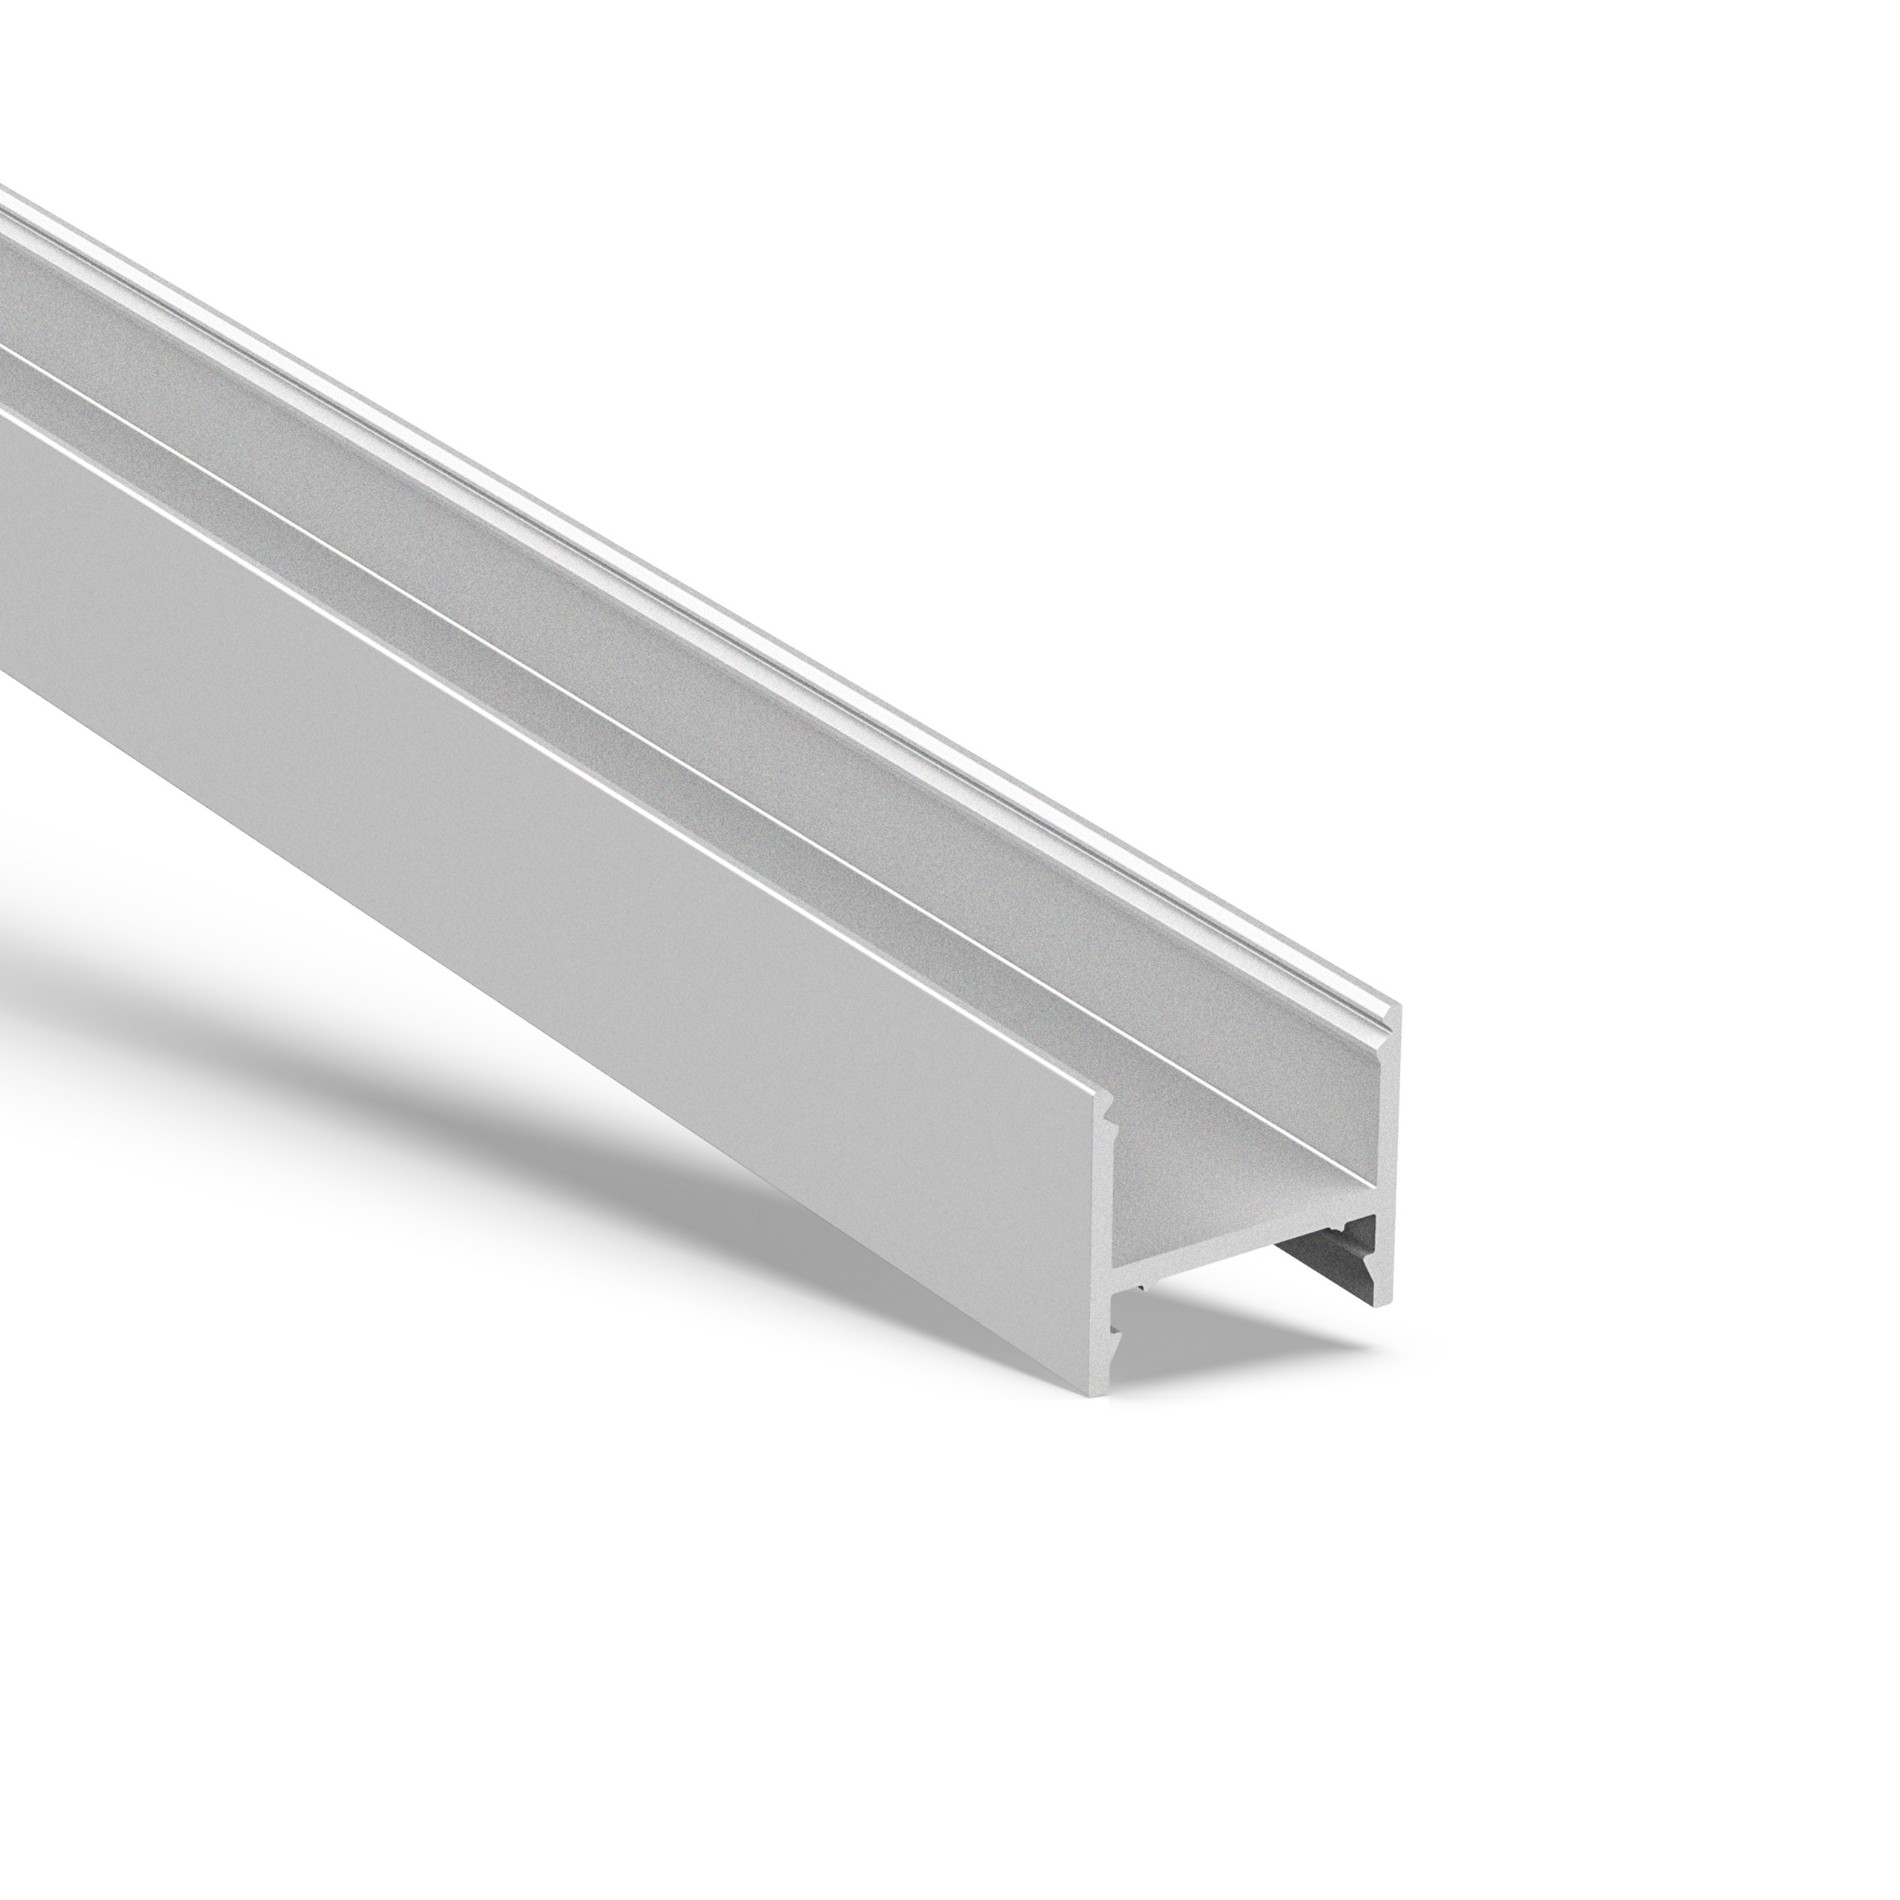 AT16-4 Deeper surface square led profile 19.5x26.2mm